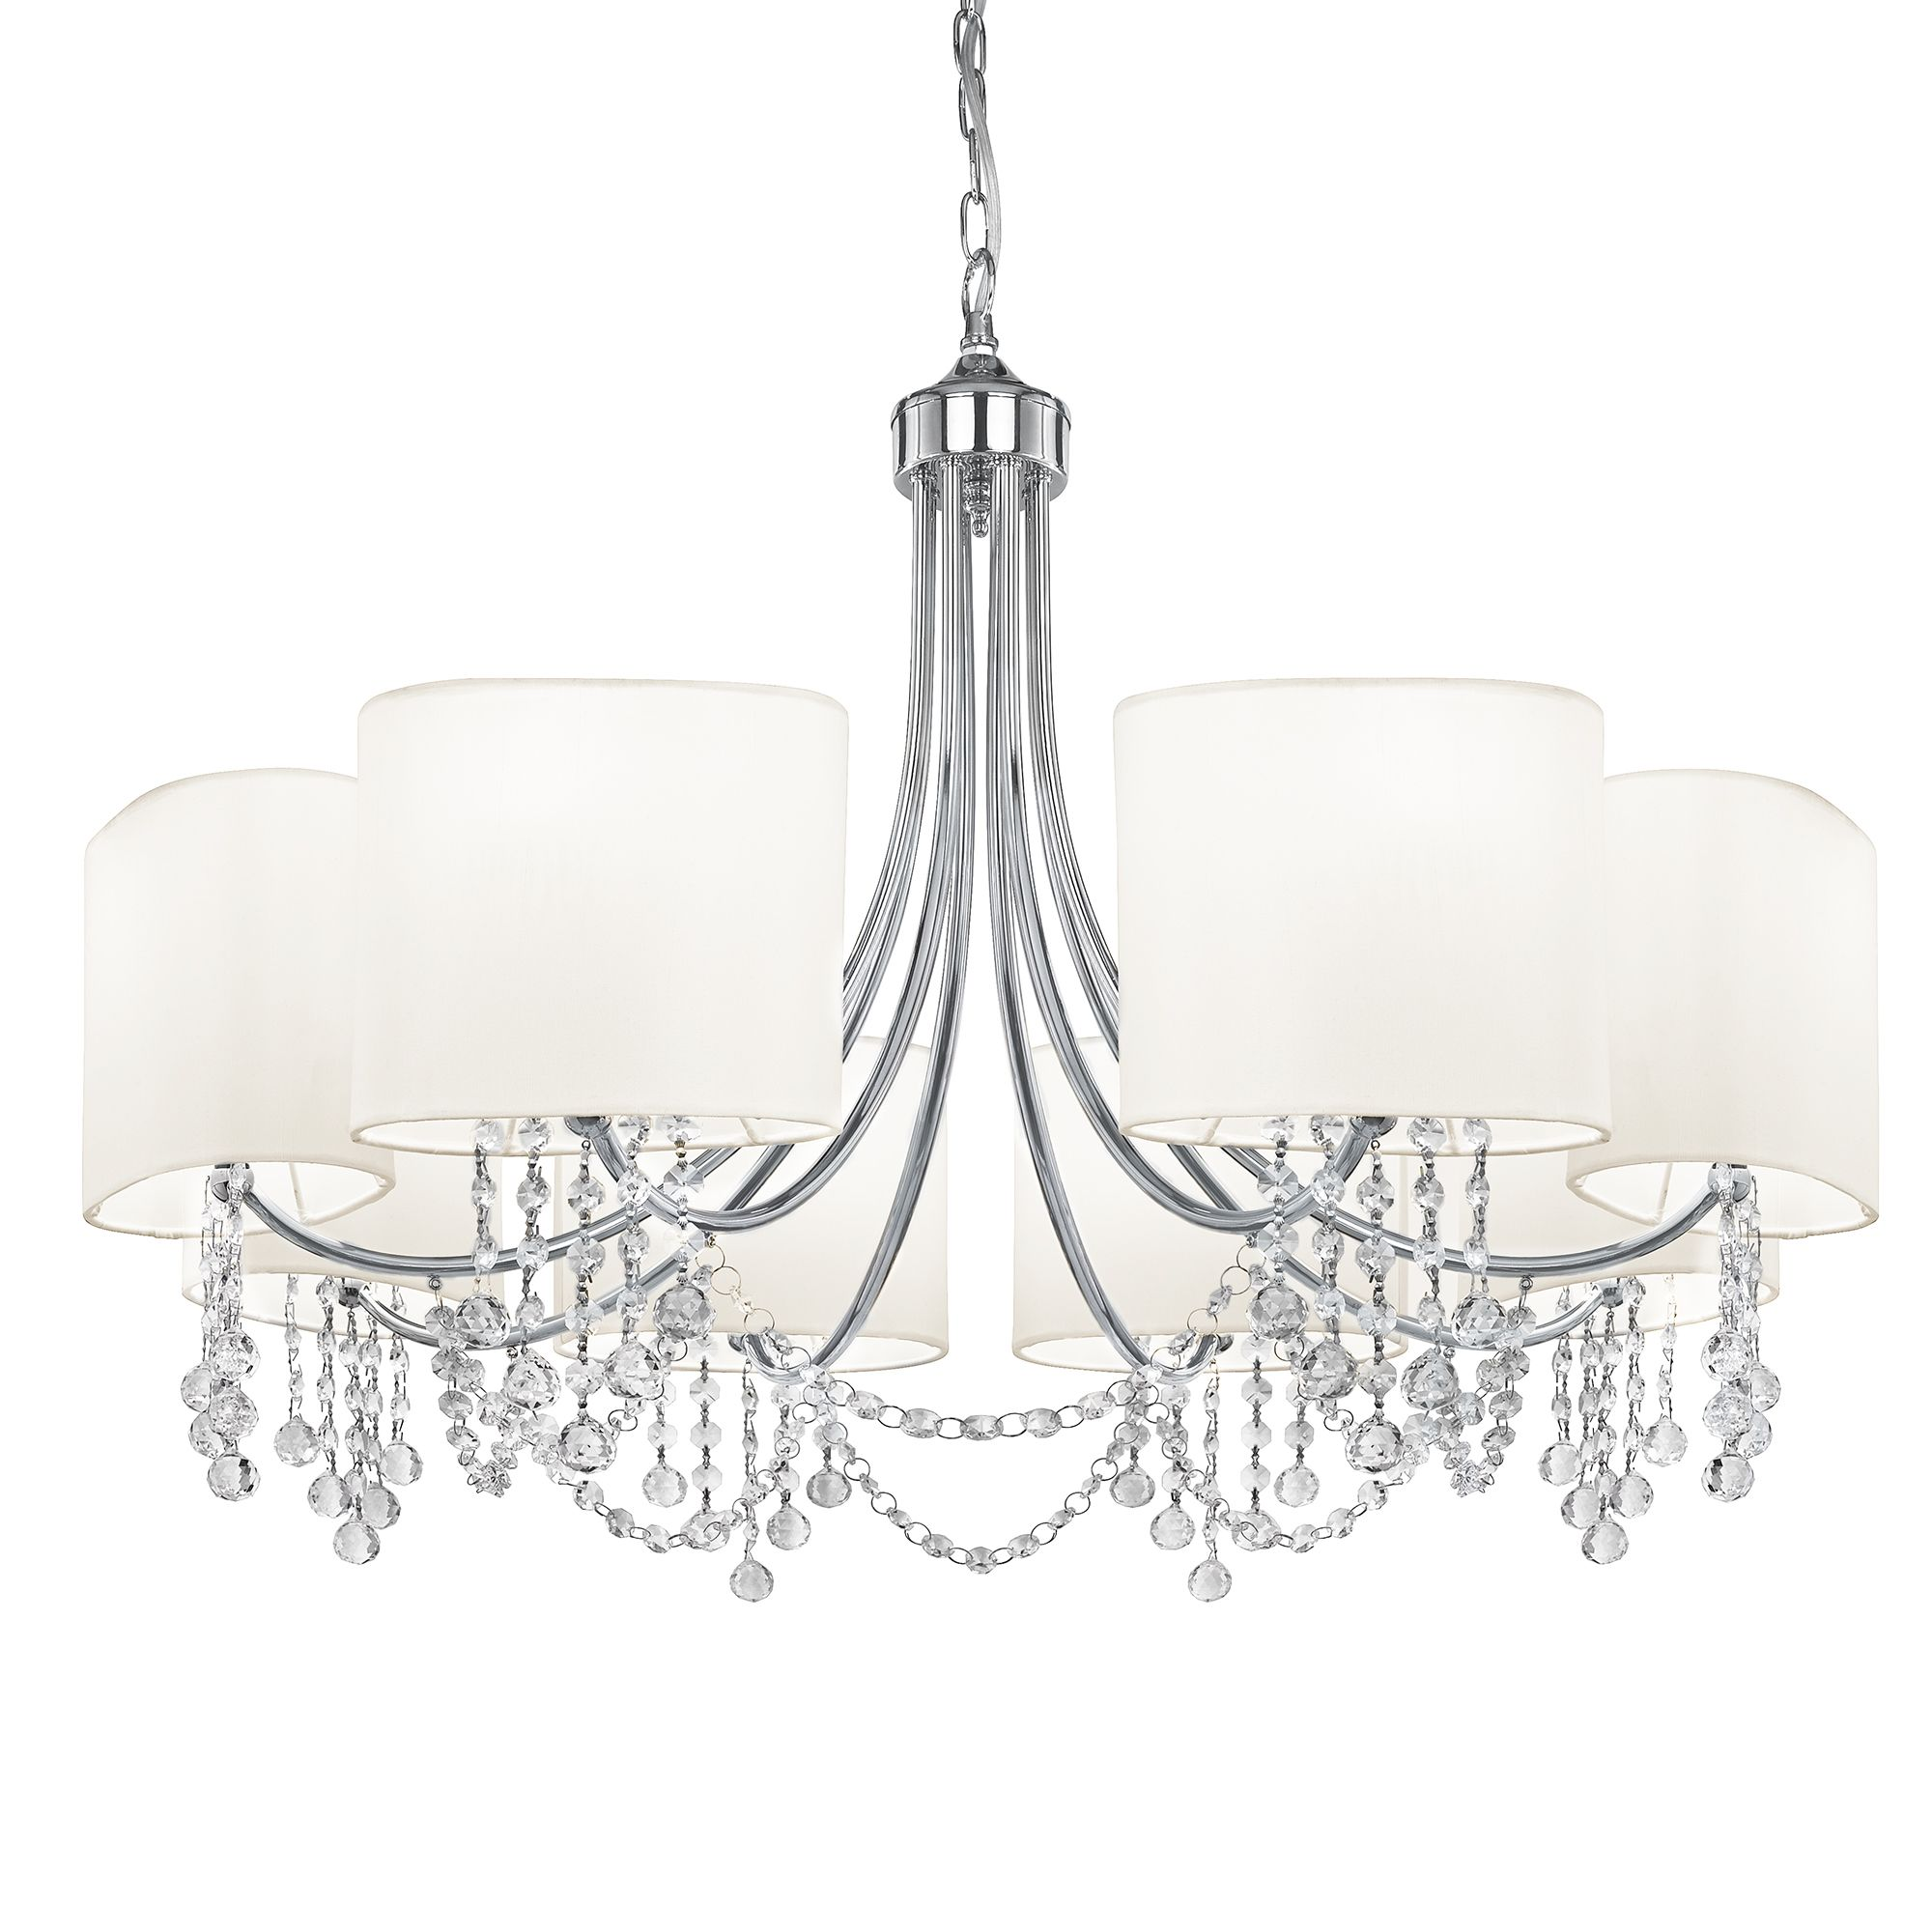 Searchlight 1058-8CC Chandelier 8x60W